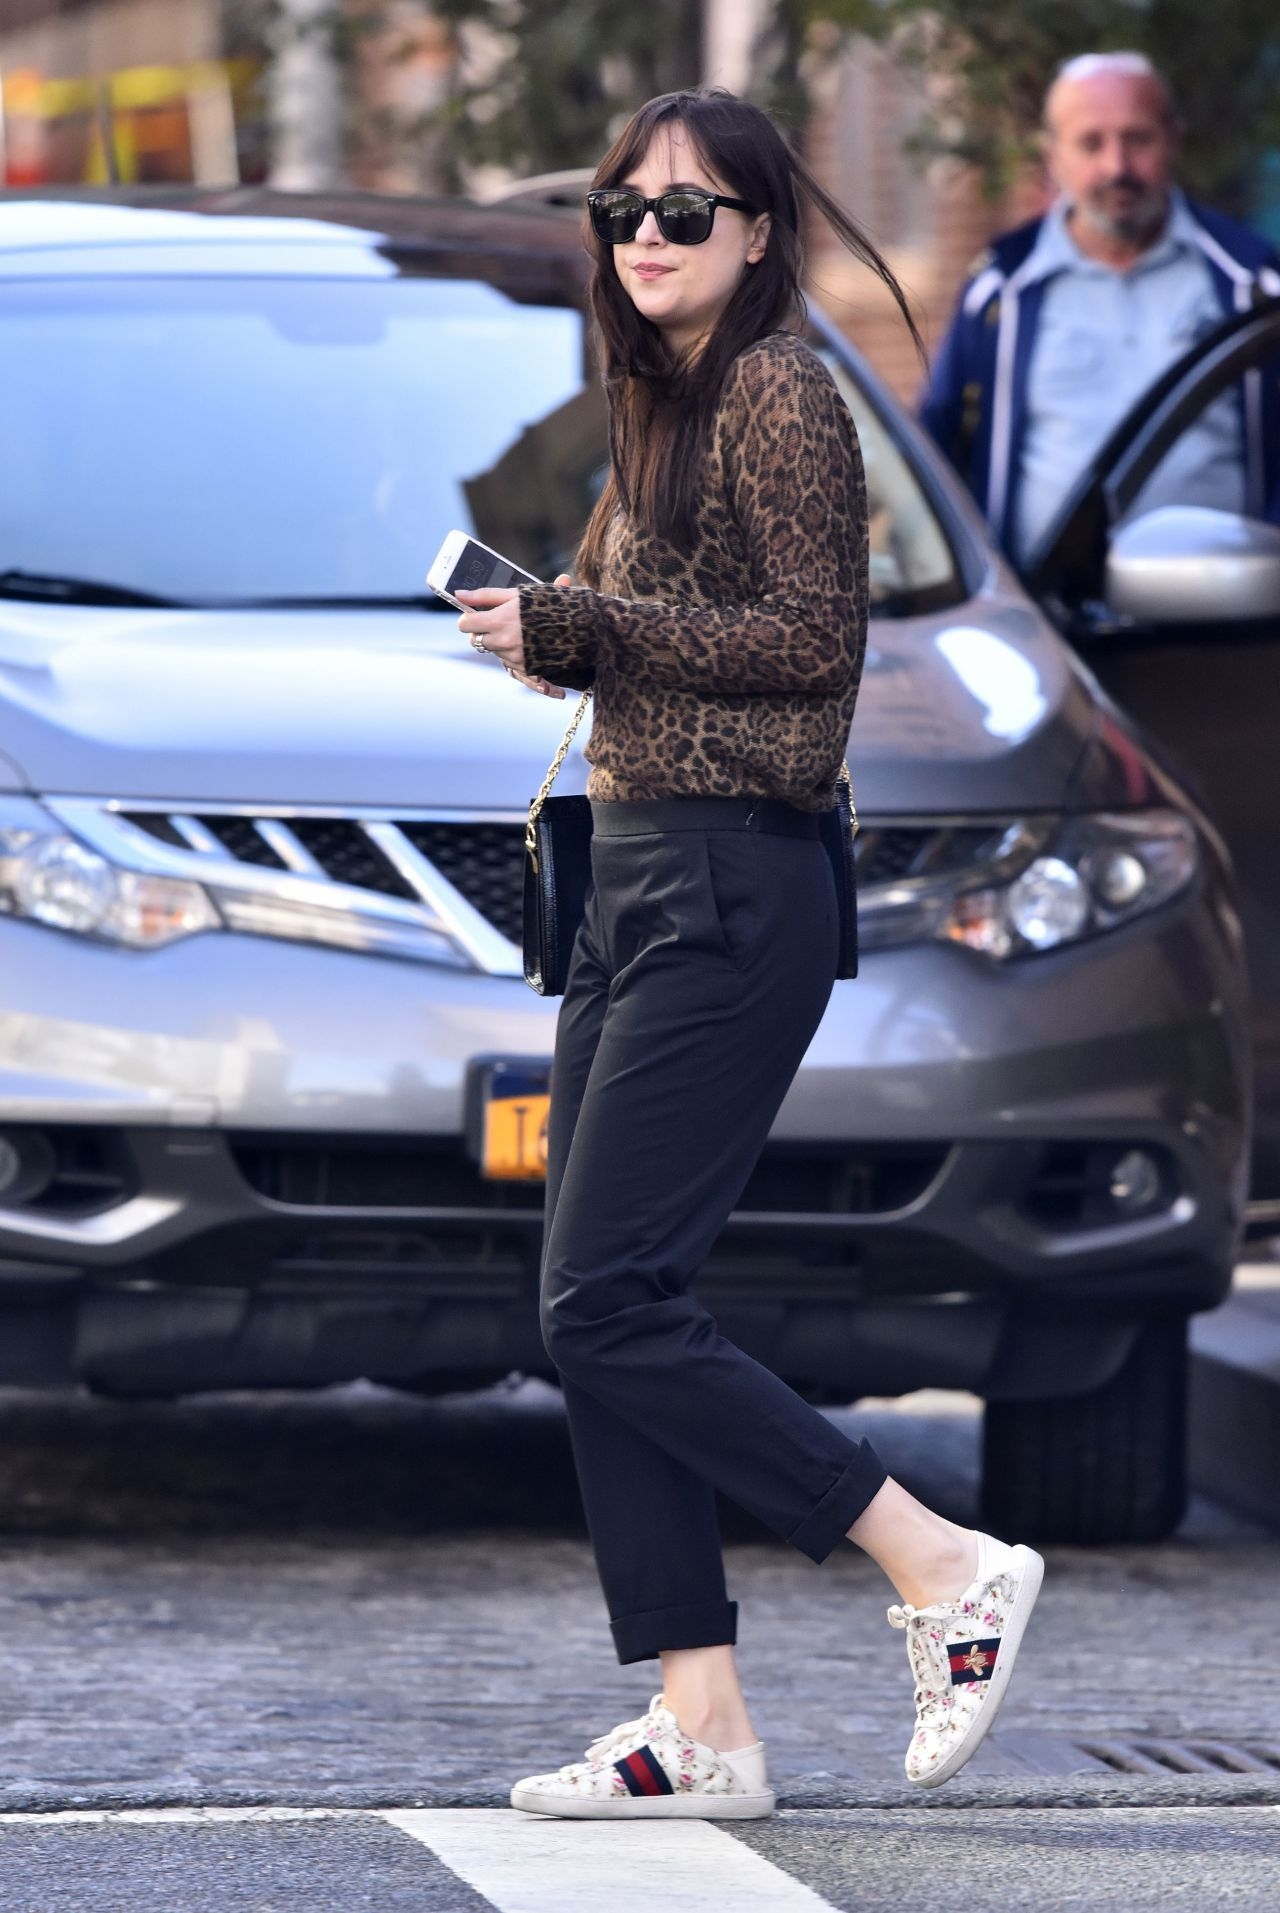 Dakota johnson in leopard top and gucci white sneakers and bag new york